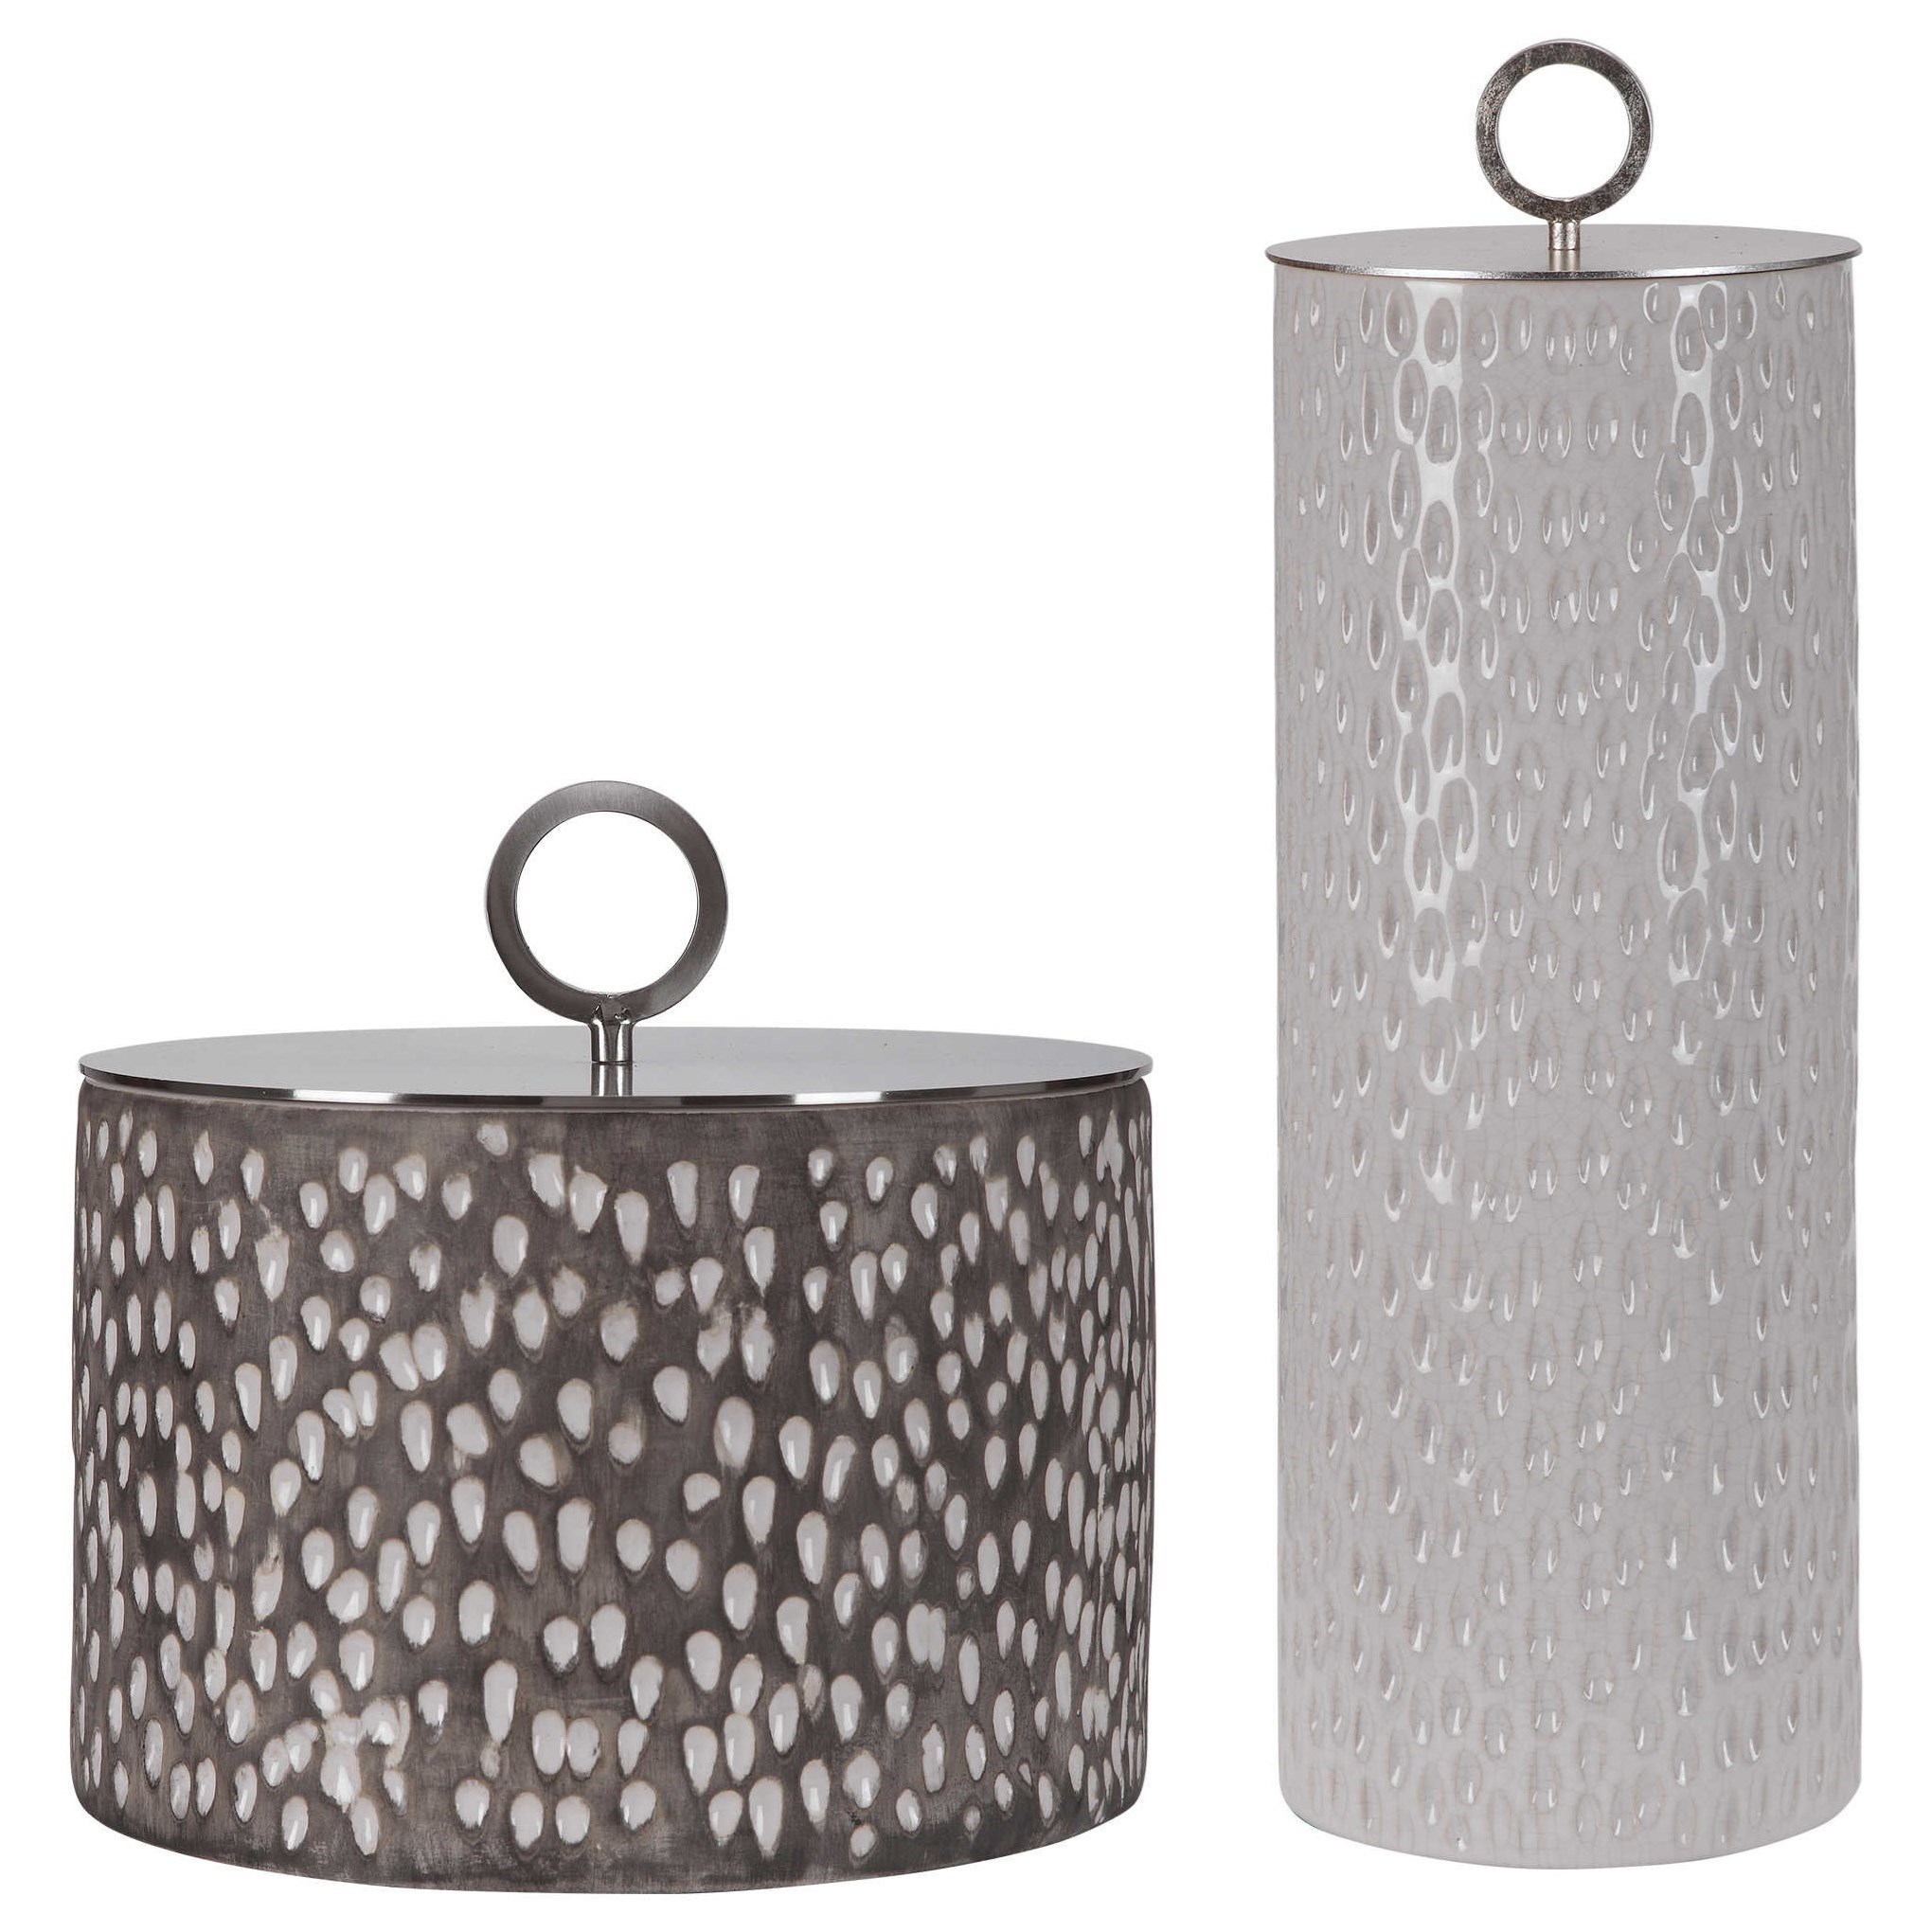 Accessories Cyprien Ceramic Containers, S/2 by Uttermost at Furniture and ApplianceMart